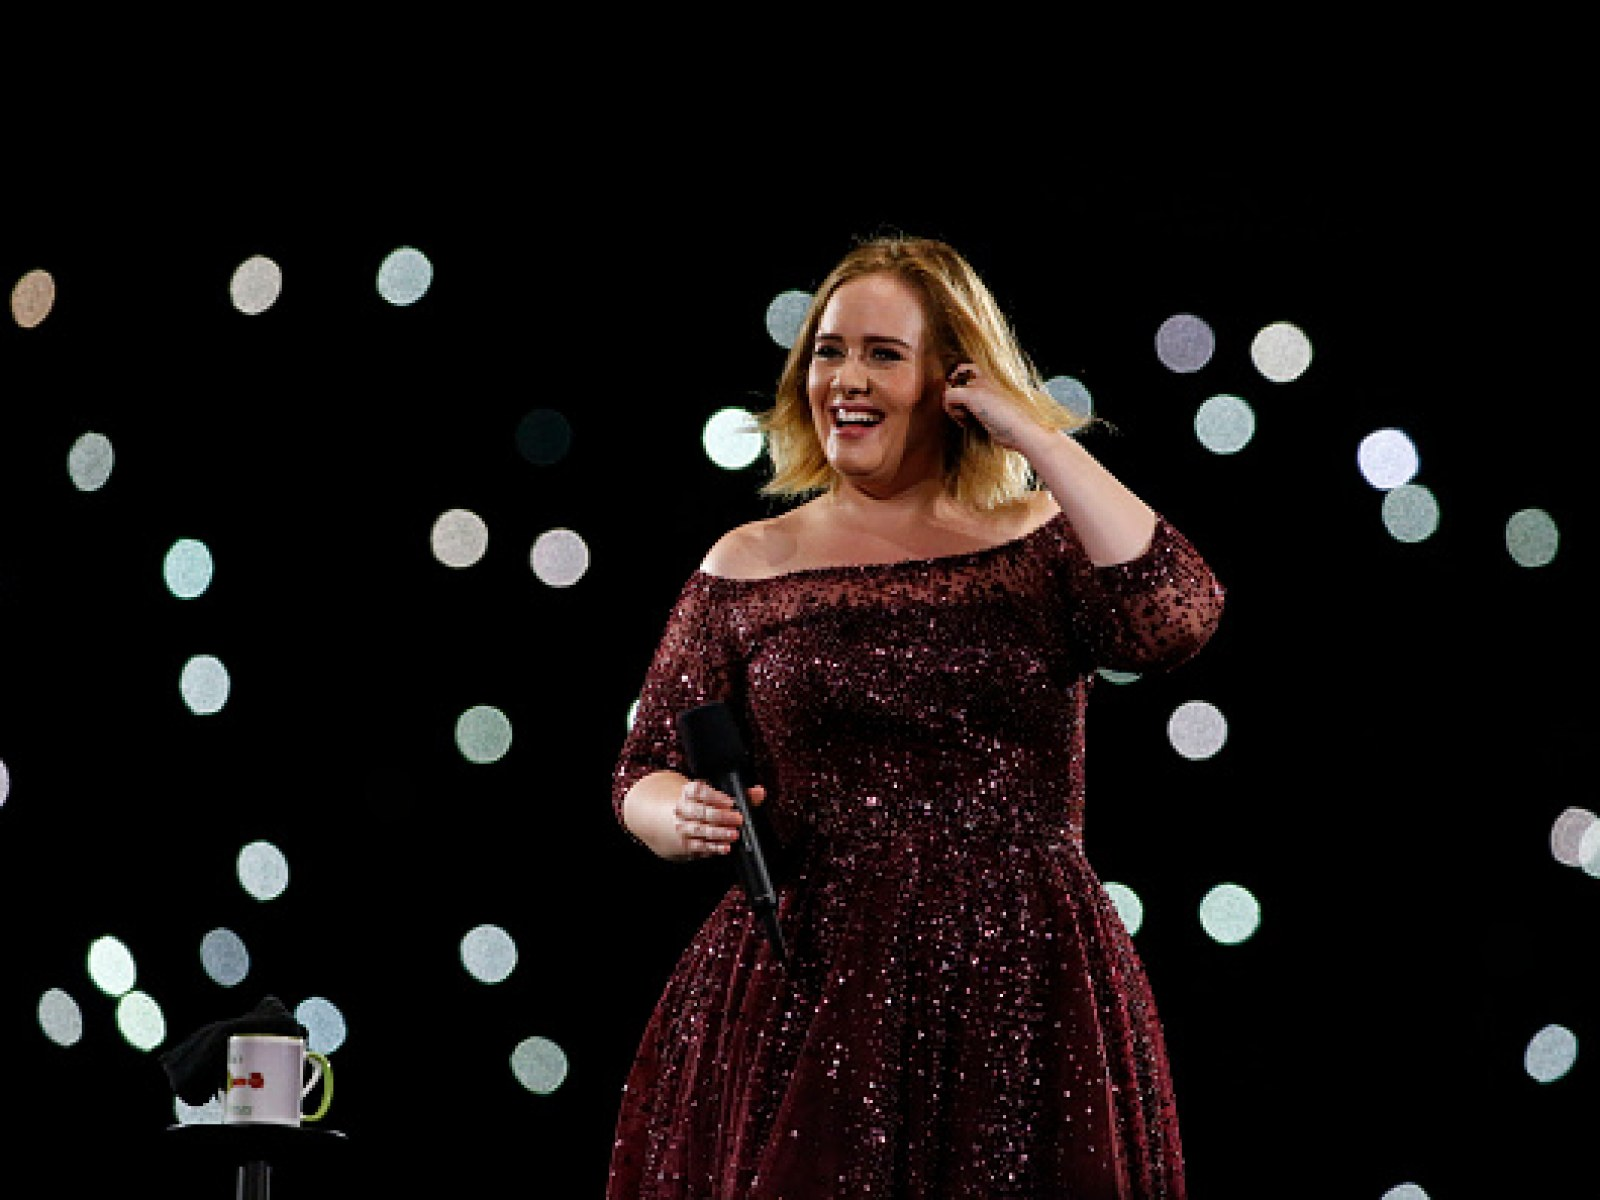 Adele Shared A Photo Of Her Wearing Bantu Knots With A Jamaican Flag Bikini Top And The Internet Lost It